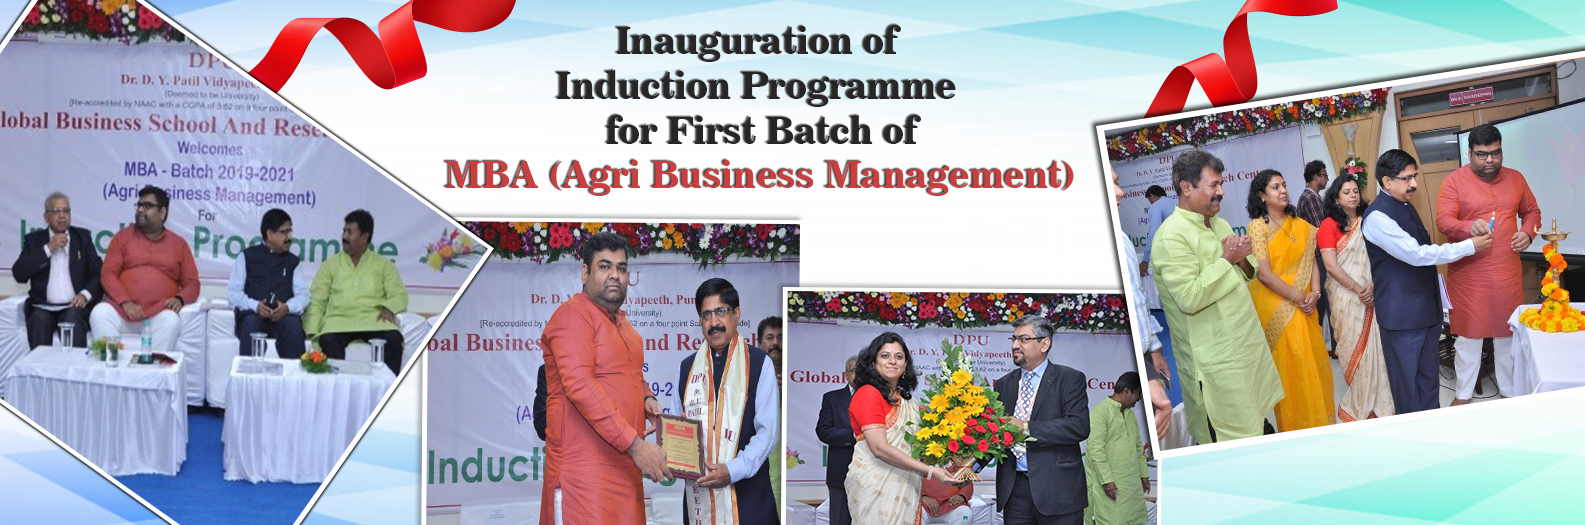 Inauguration of Induction Programme for First Batch of MBA (Agri Business Management)